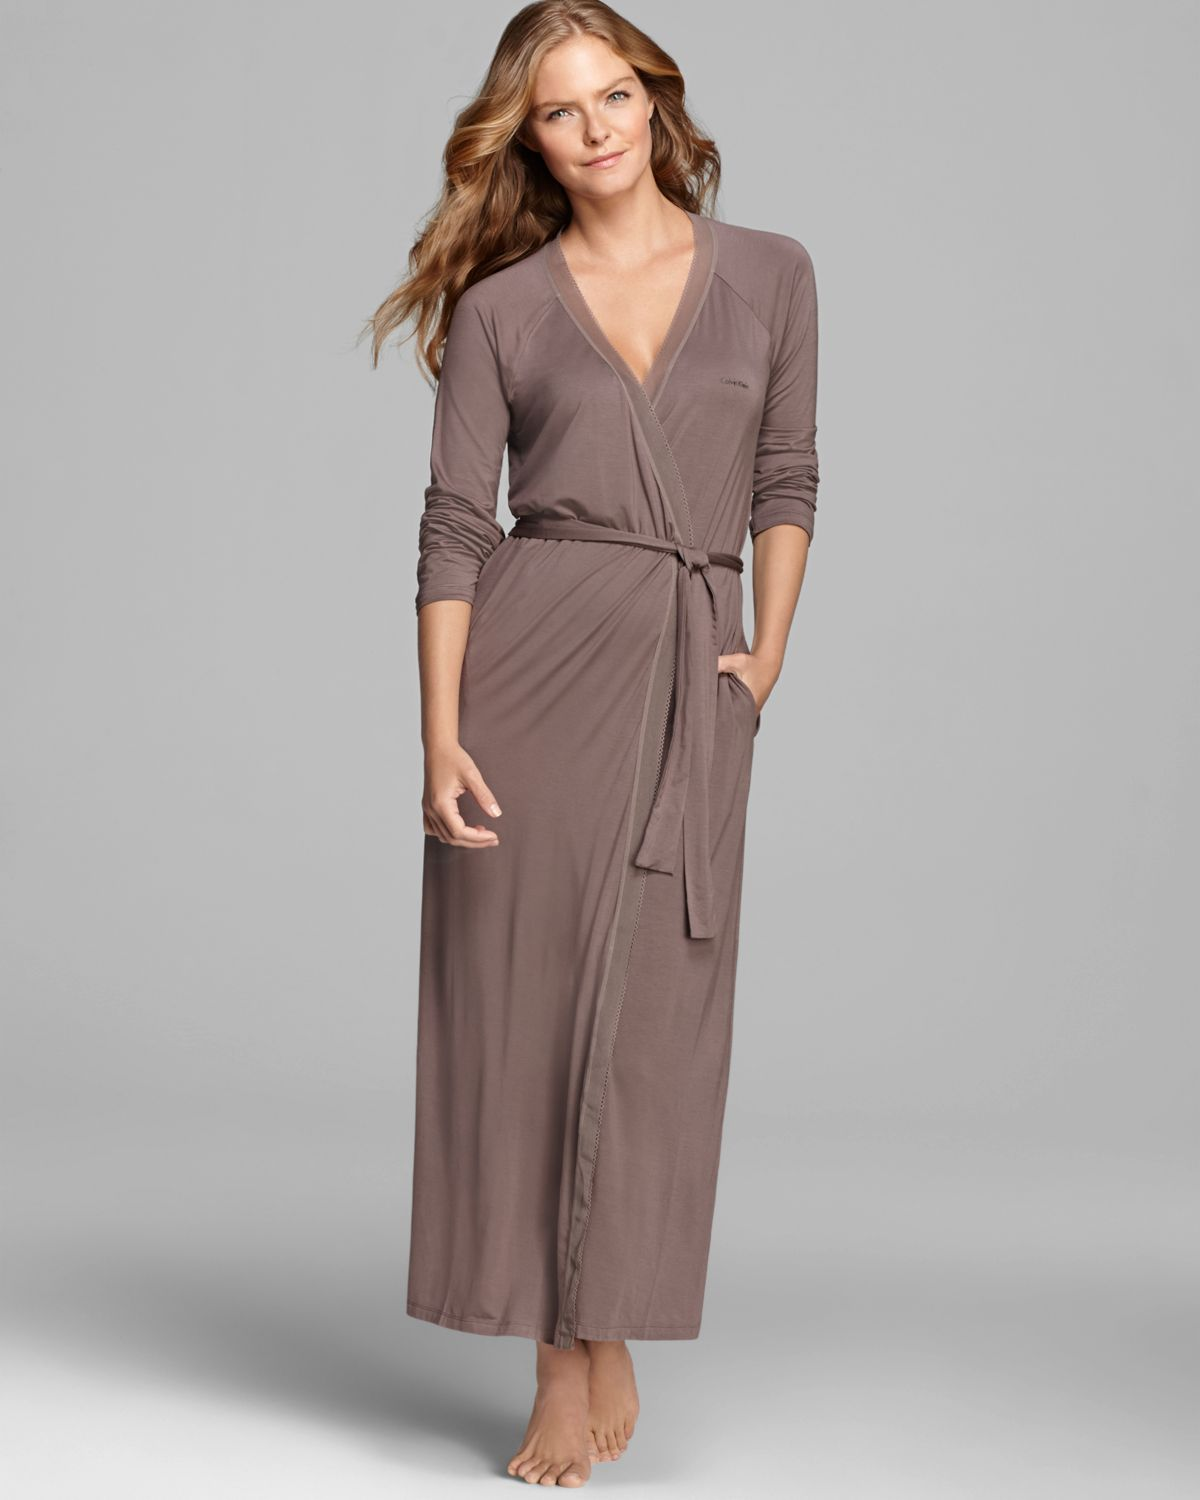 Lyst - Calvin Klein Icon Long Robe in Brown